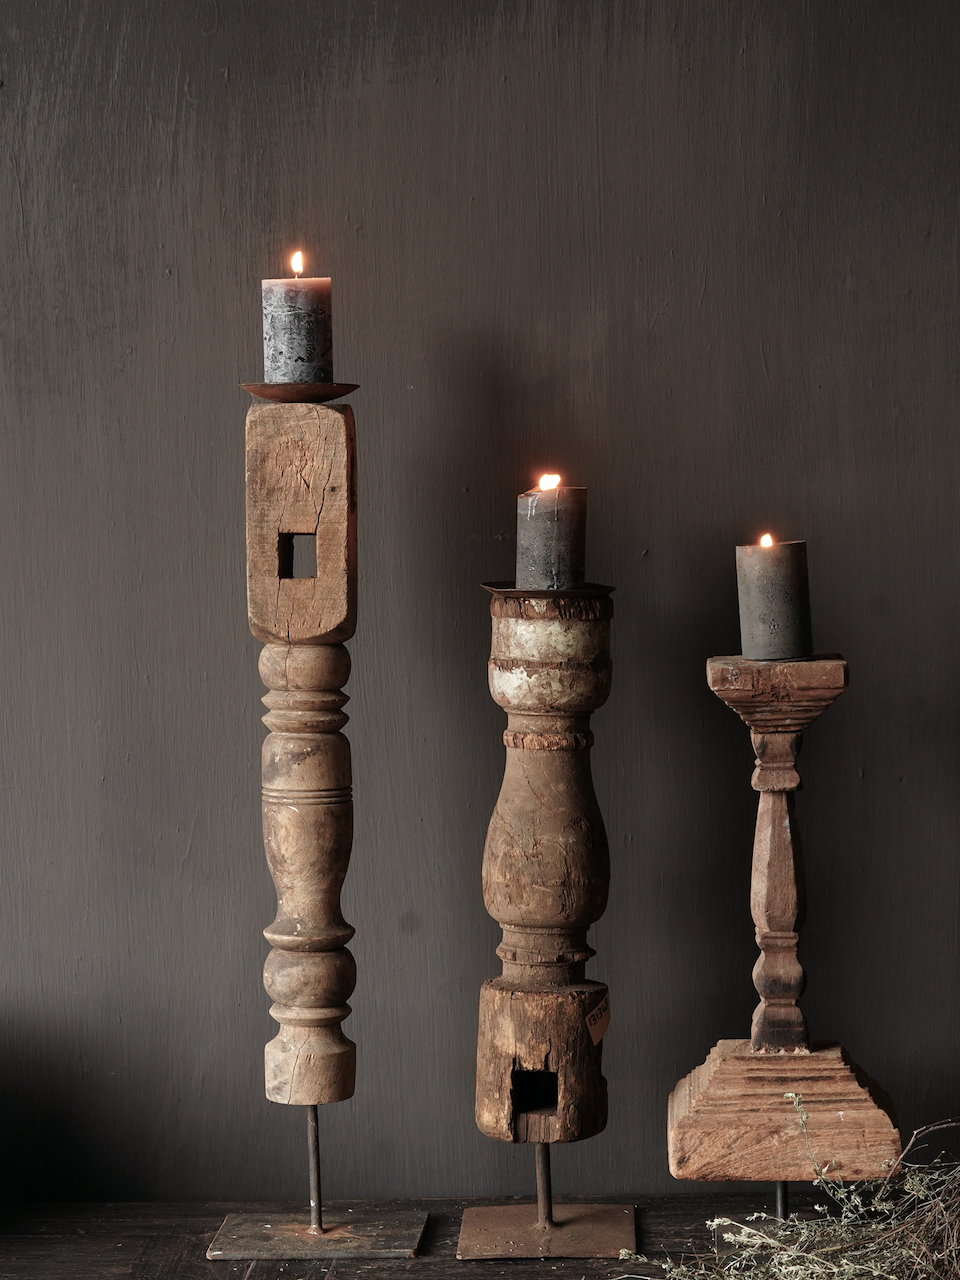 Wooden Nepalese candlestick made of old ornament-5